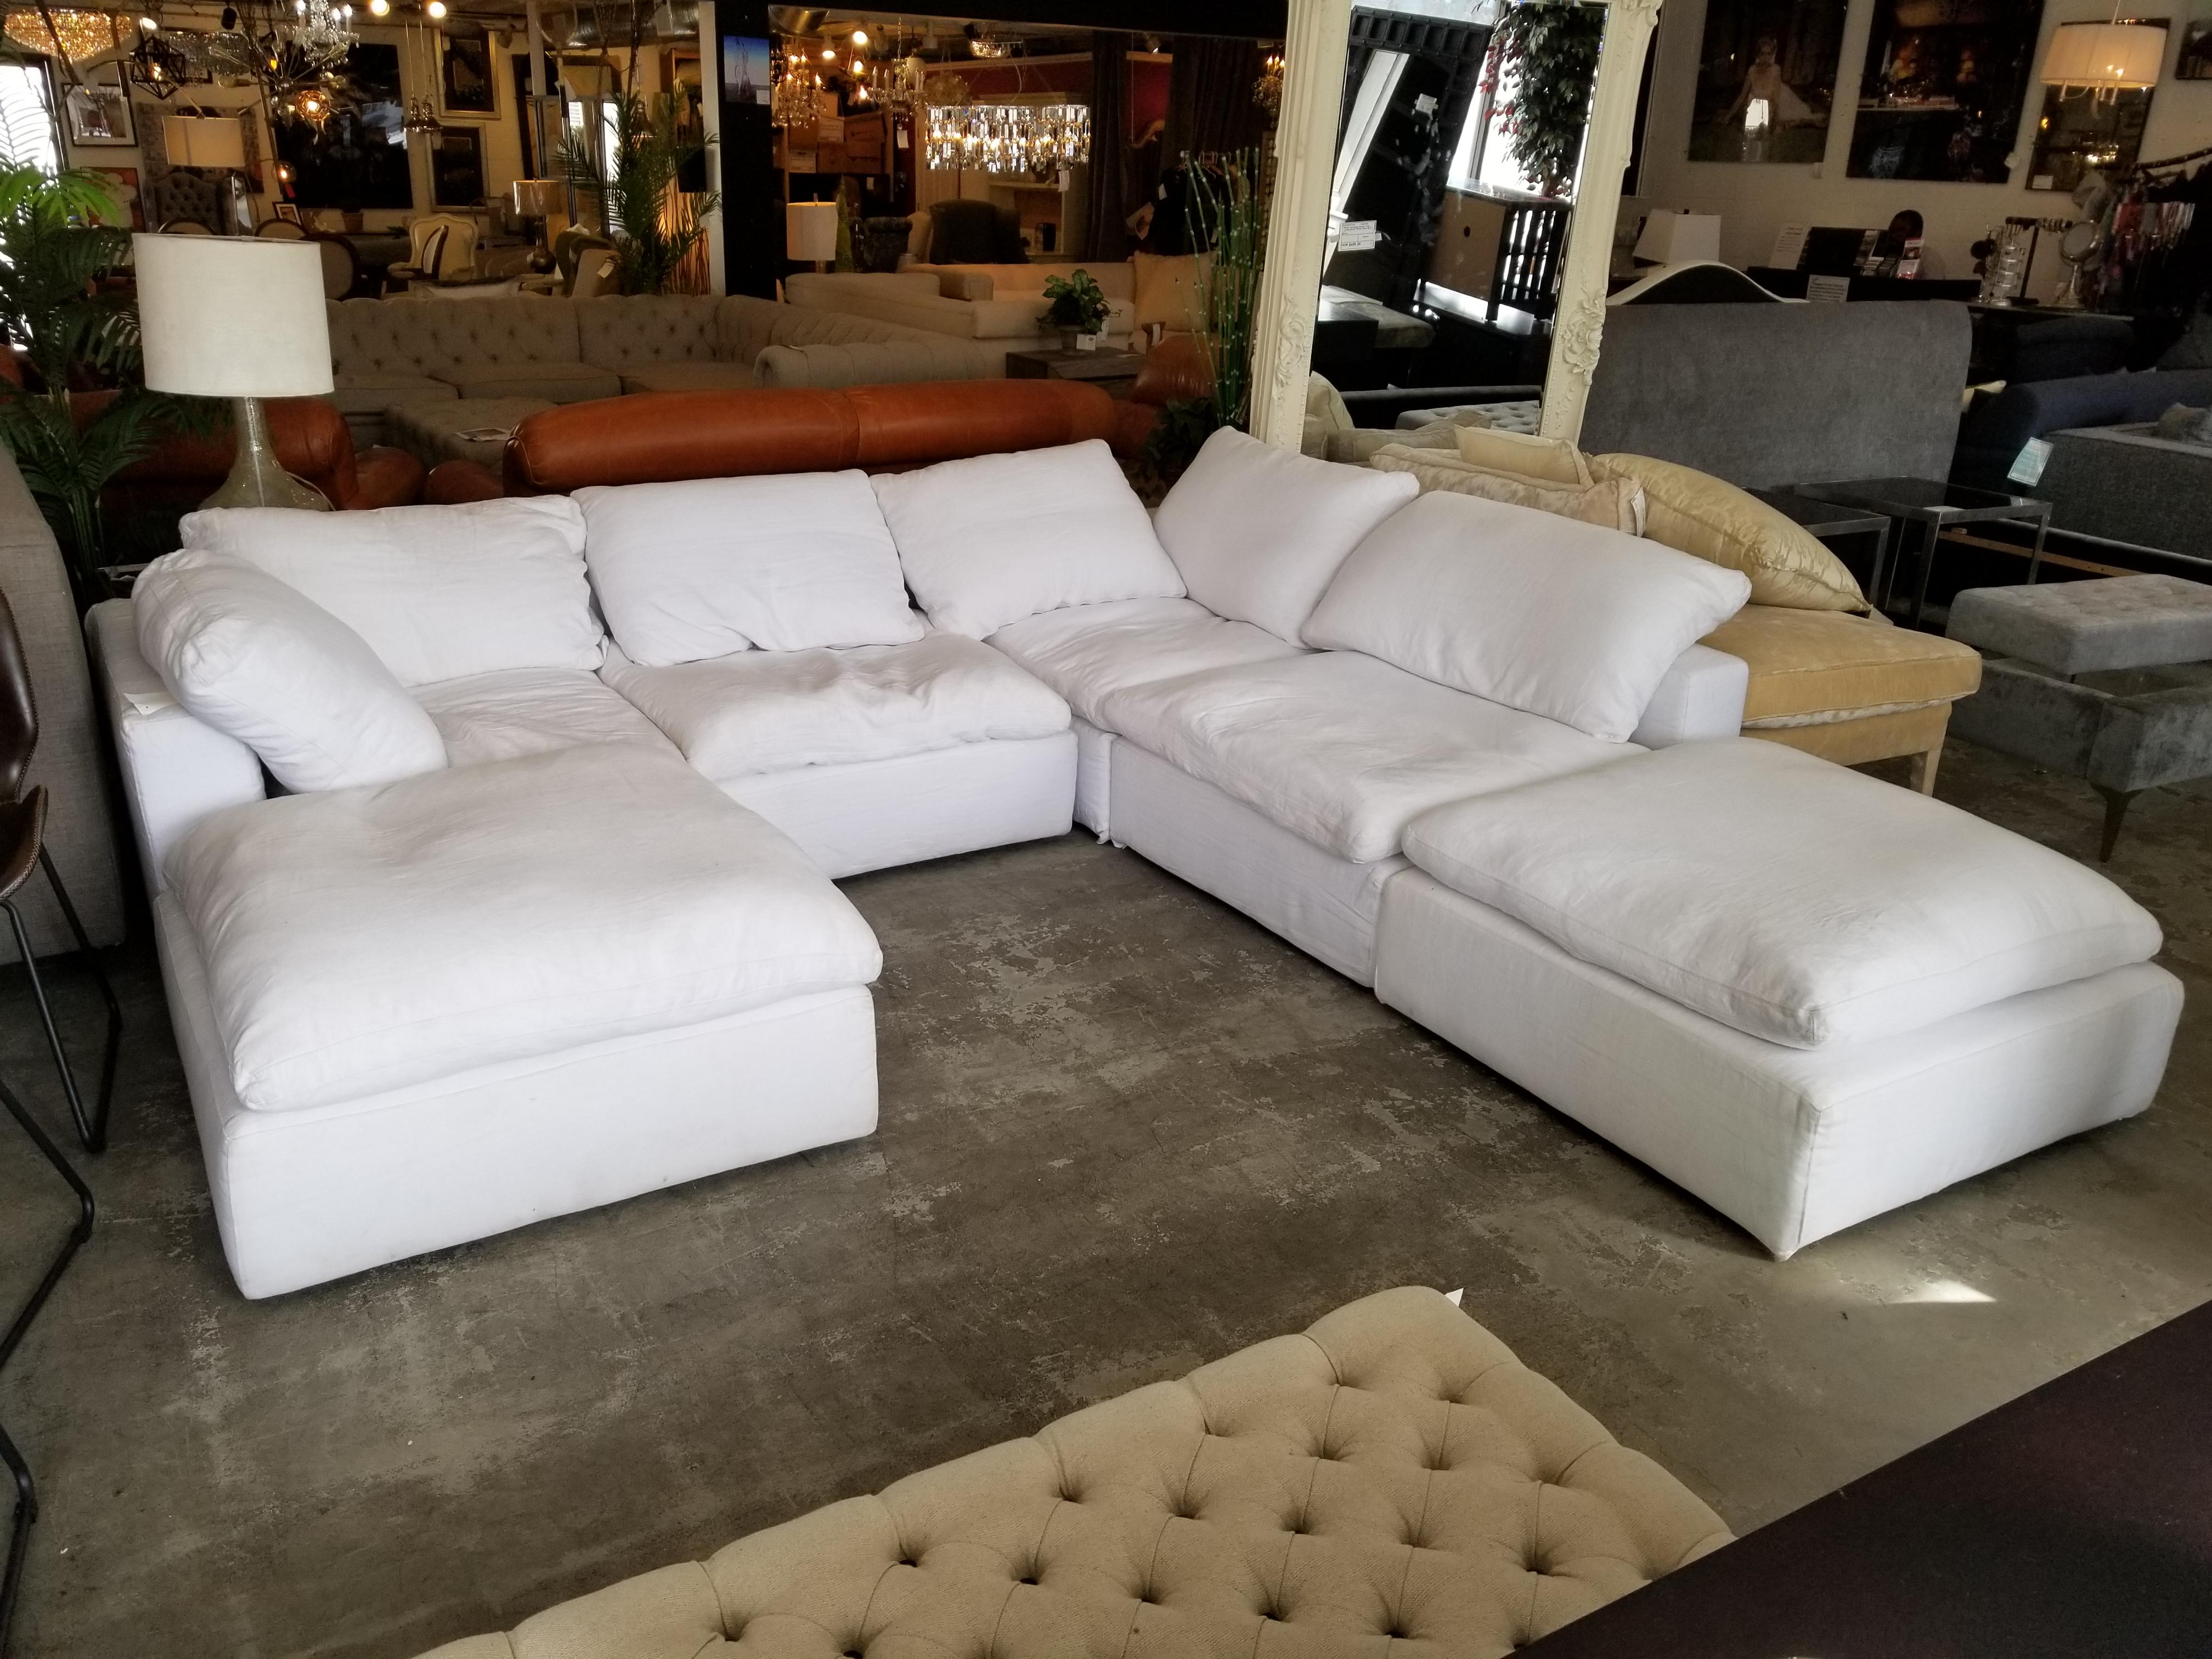 restoration hardware sectional sofa linen baker furniture max slipcovered cloud modular in fabric white for sale image 7